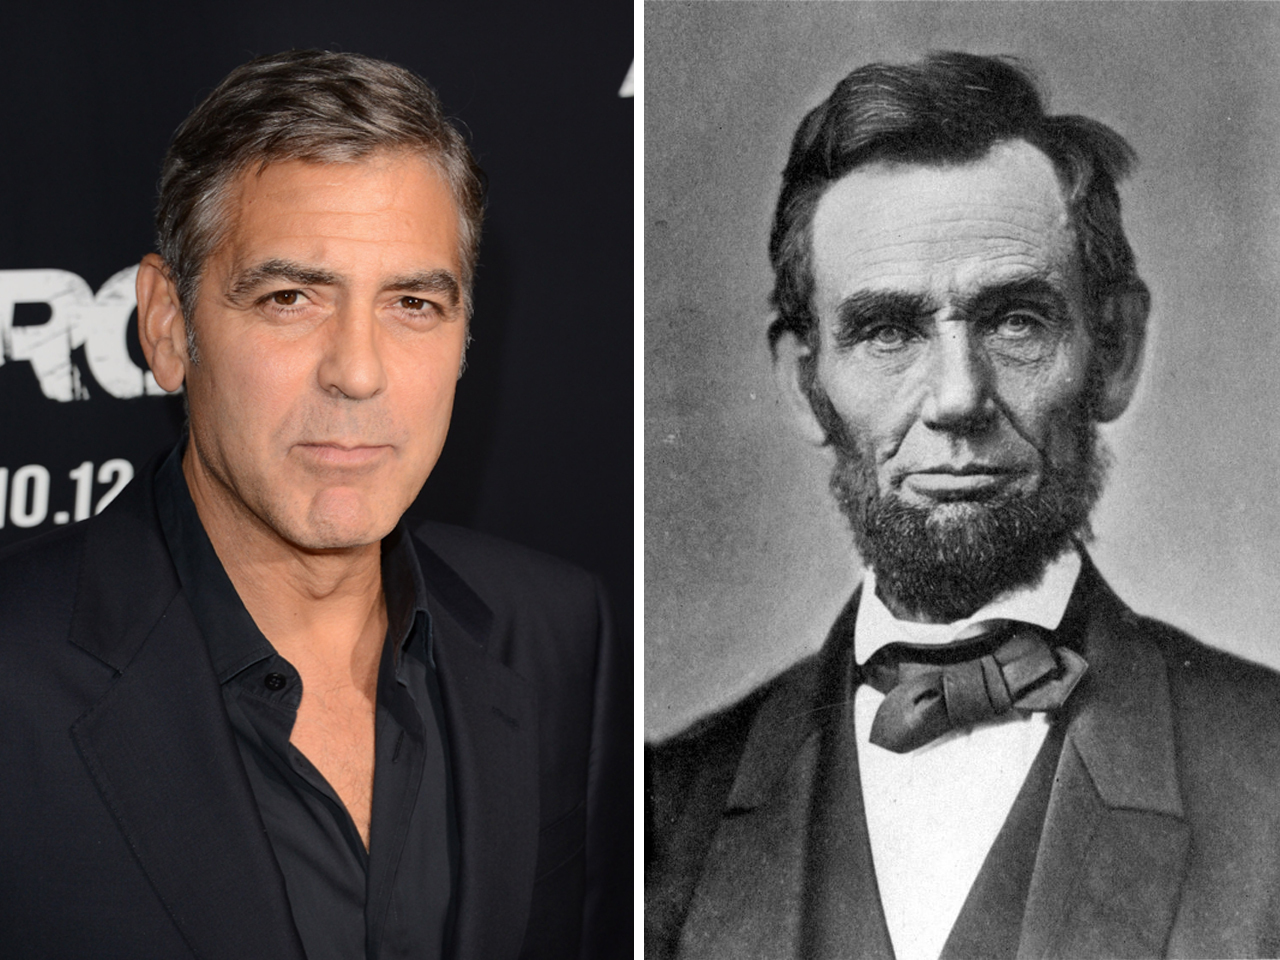 George Clooney And Abraham Lincoln Are Distantly Related